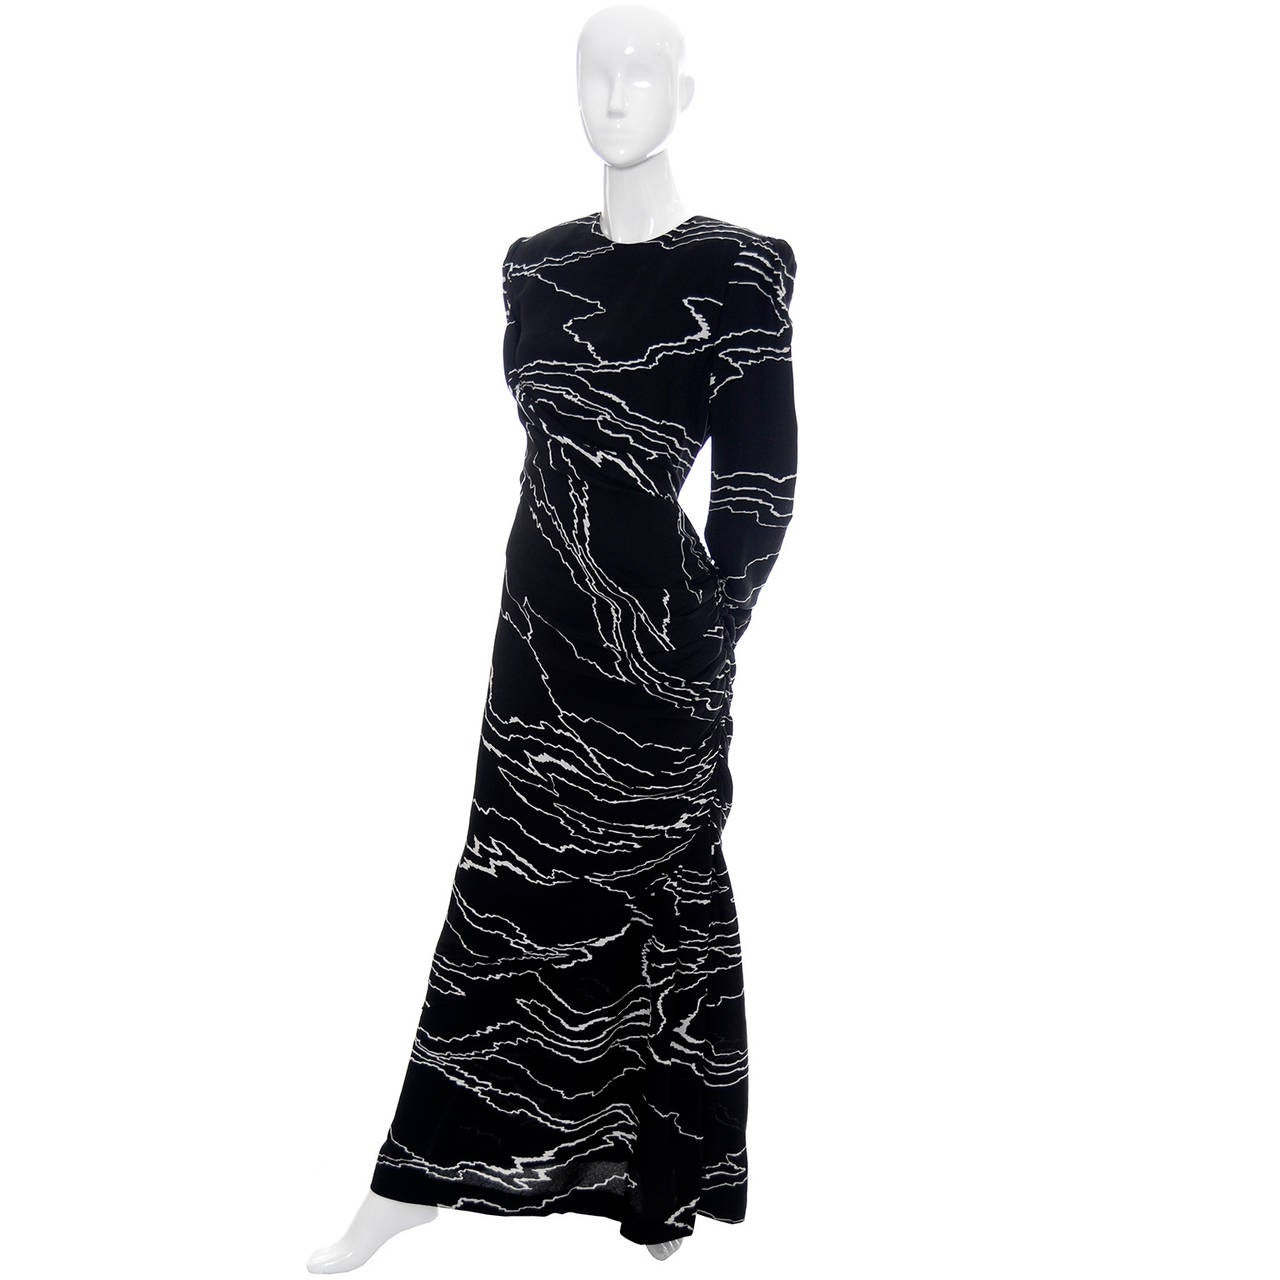 This elegant Bill Blass designer vintage dress is from the 1980s and is in a stunning black and white abstract print. There are two zippers, shoulder pads, and incredible draping.  This is a fabulous dress and the side gathers add just the right